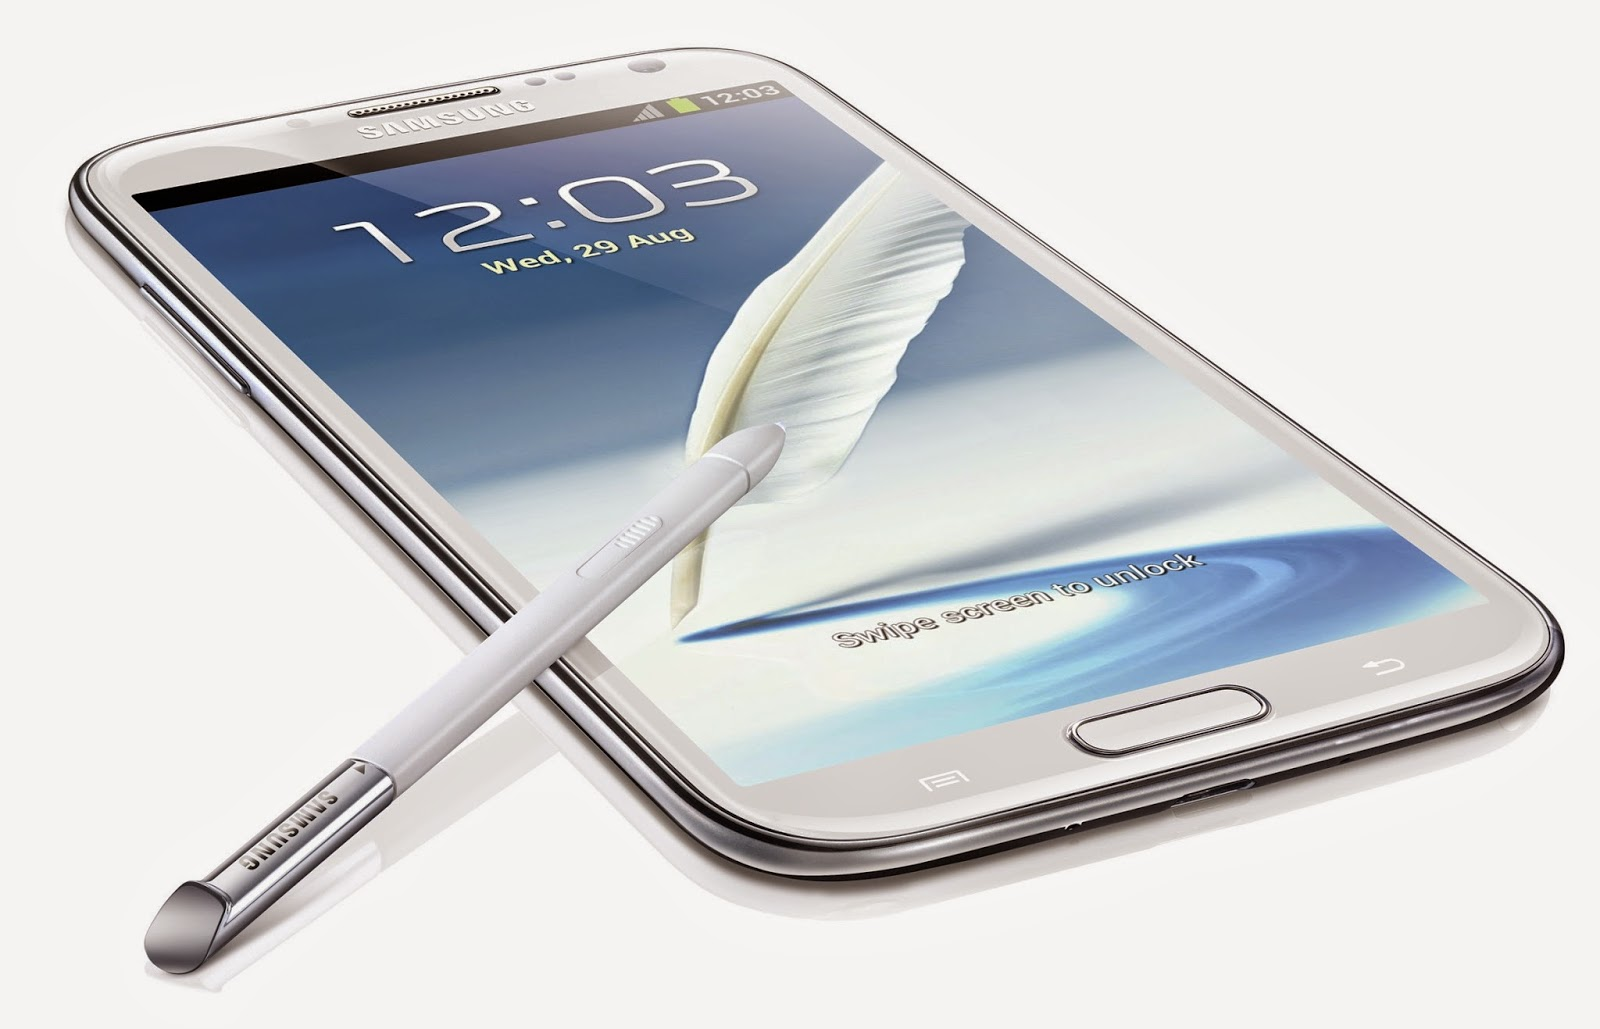 The Easiest Way How To Update Samsung Galaxy Note 2 Without Making Any Preparations